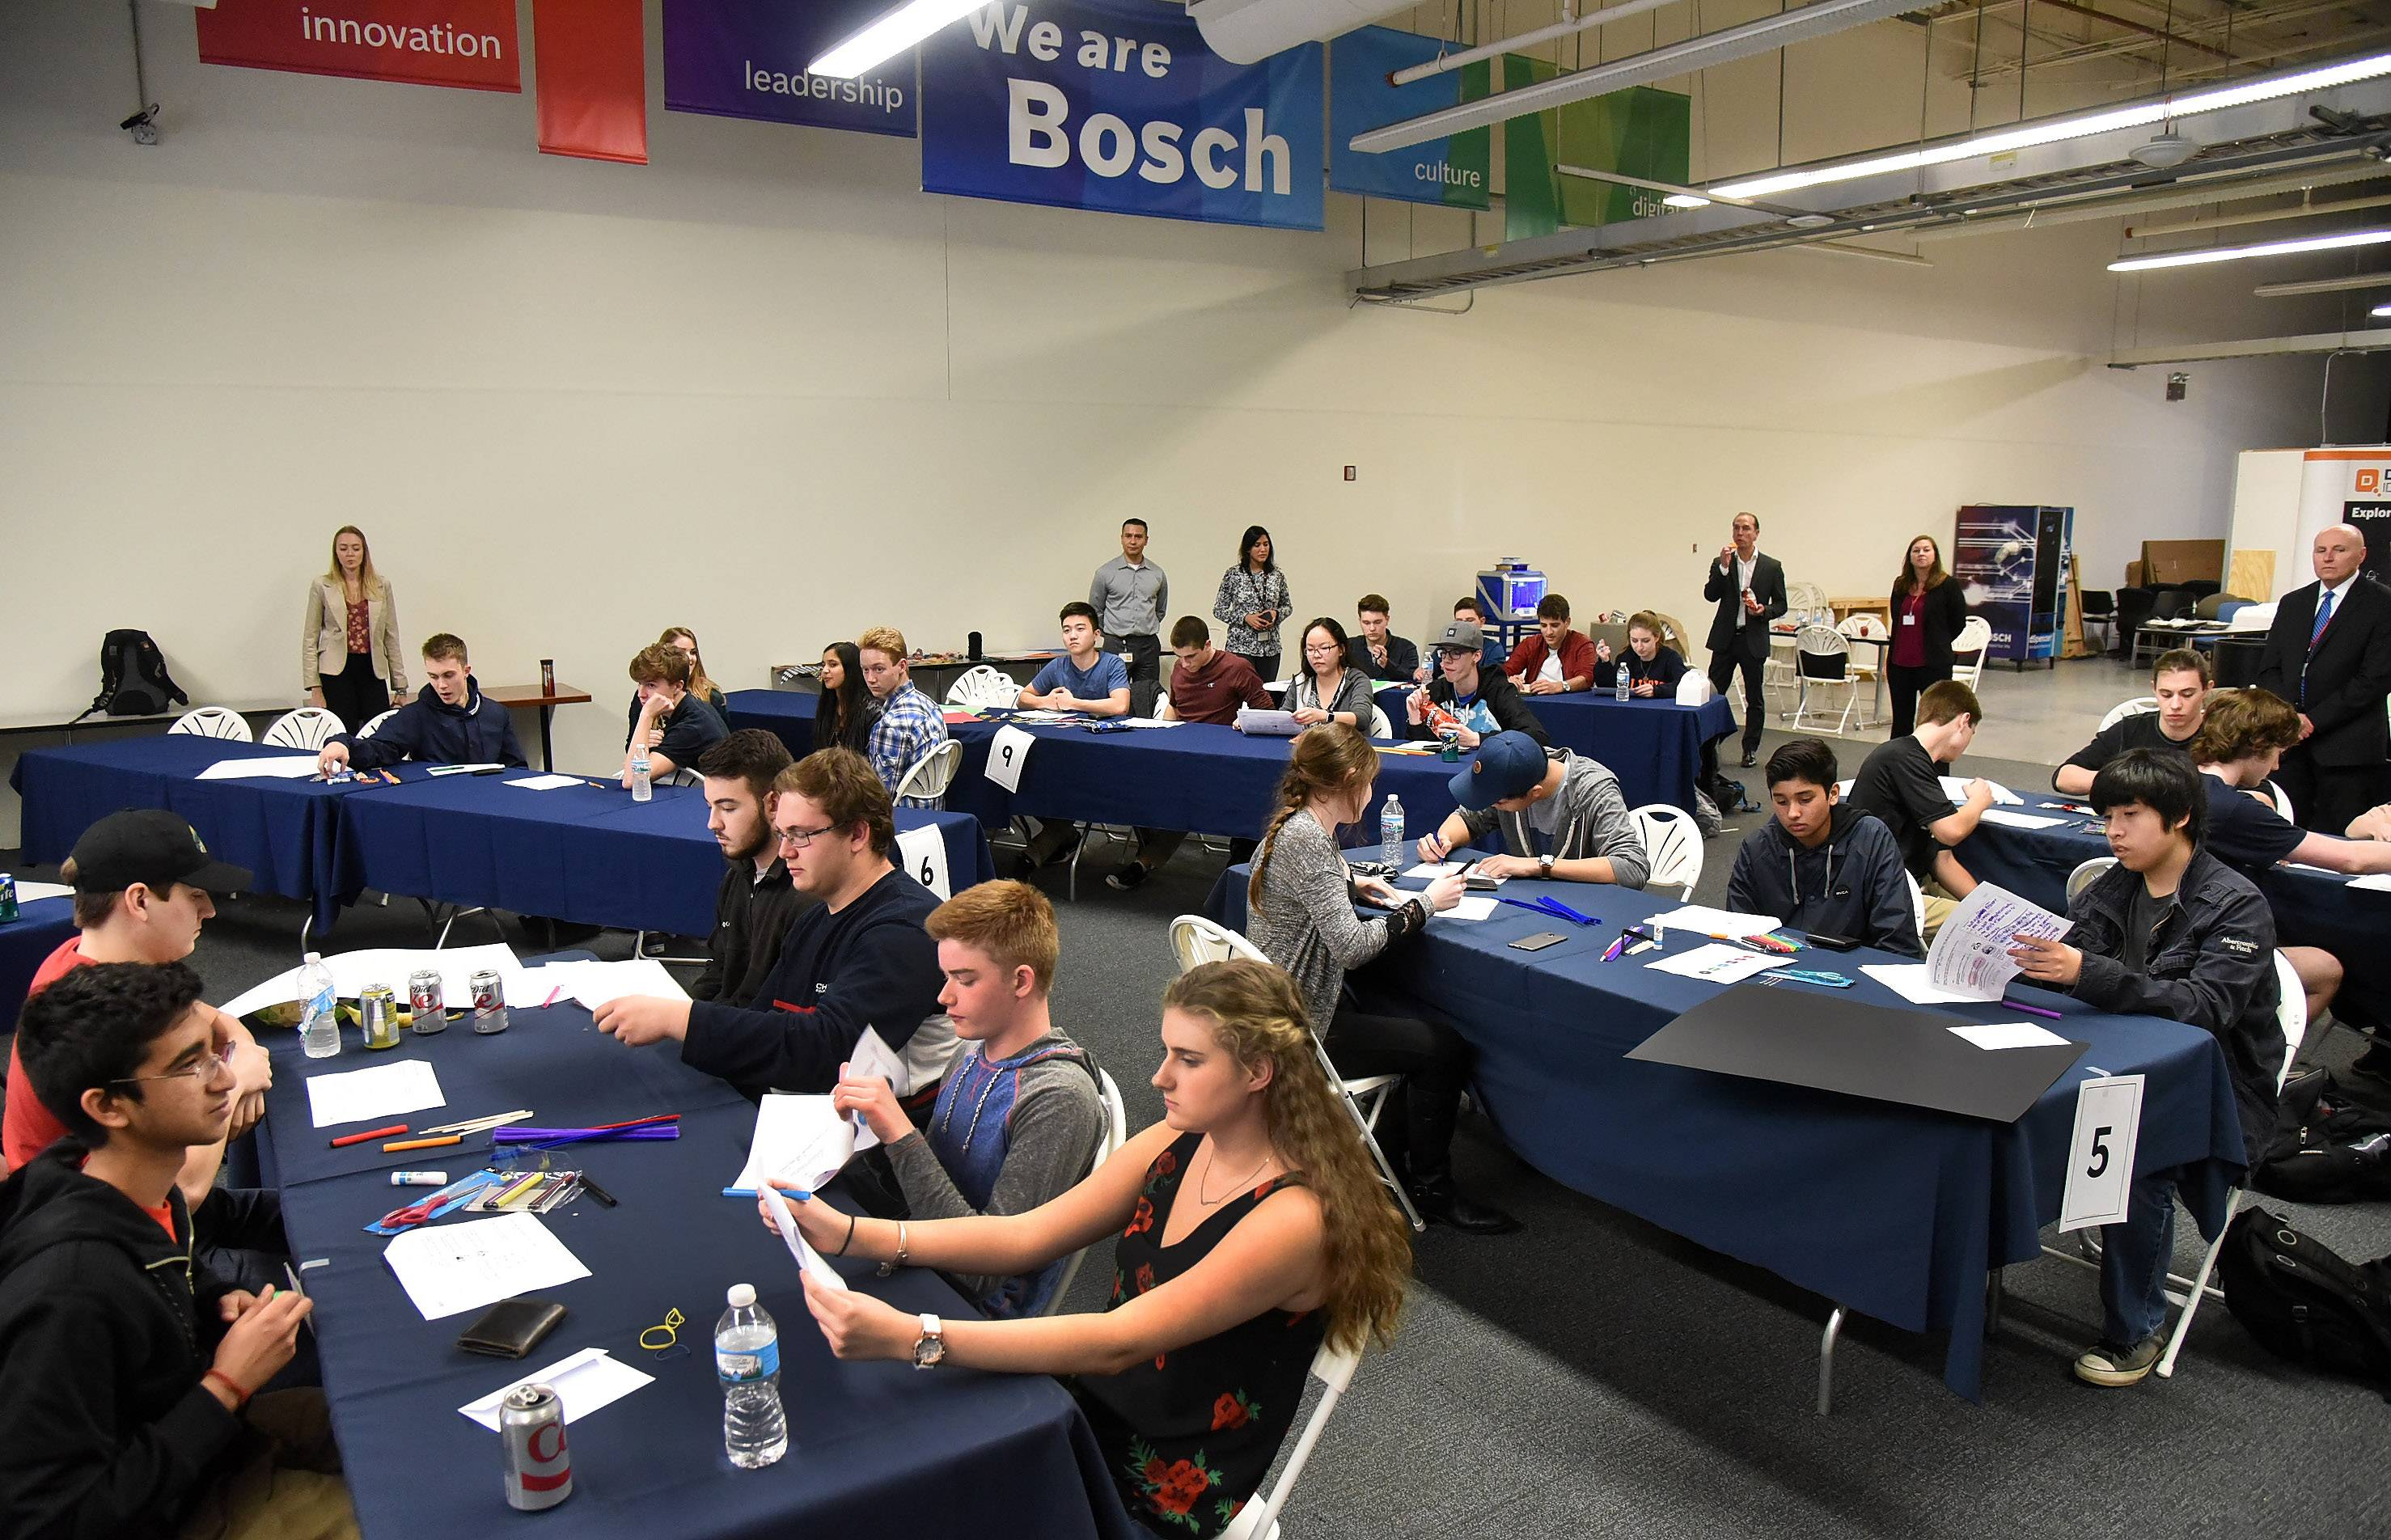 Bosch Tool Corporation in Mount Prospect hosted 80 engineering students from across the area to participate in an Engineering Development & Design thinking activity and competition.